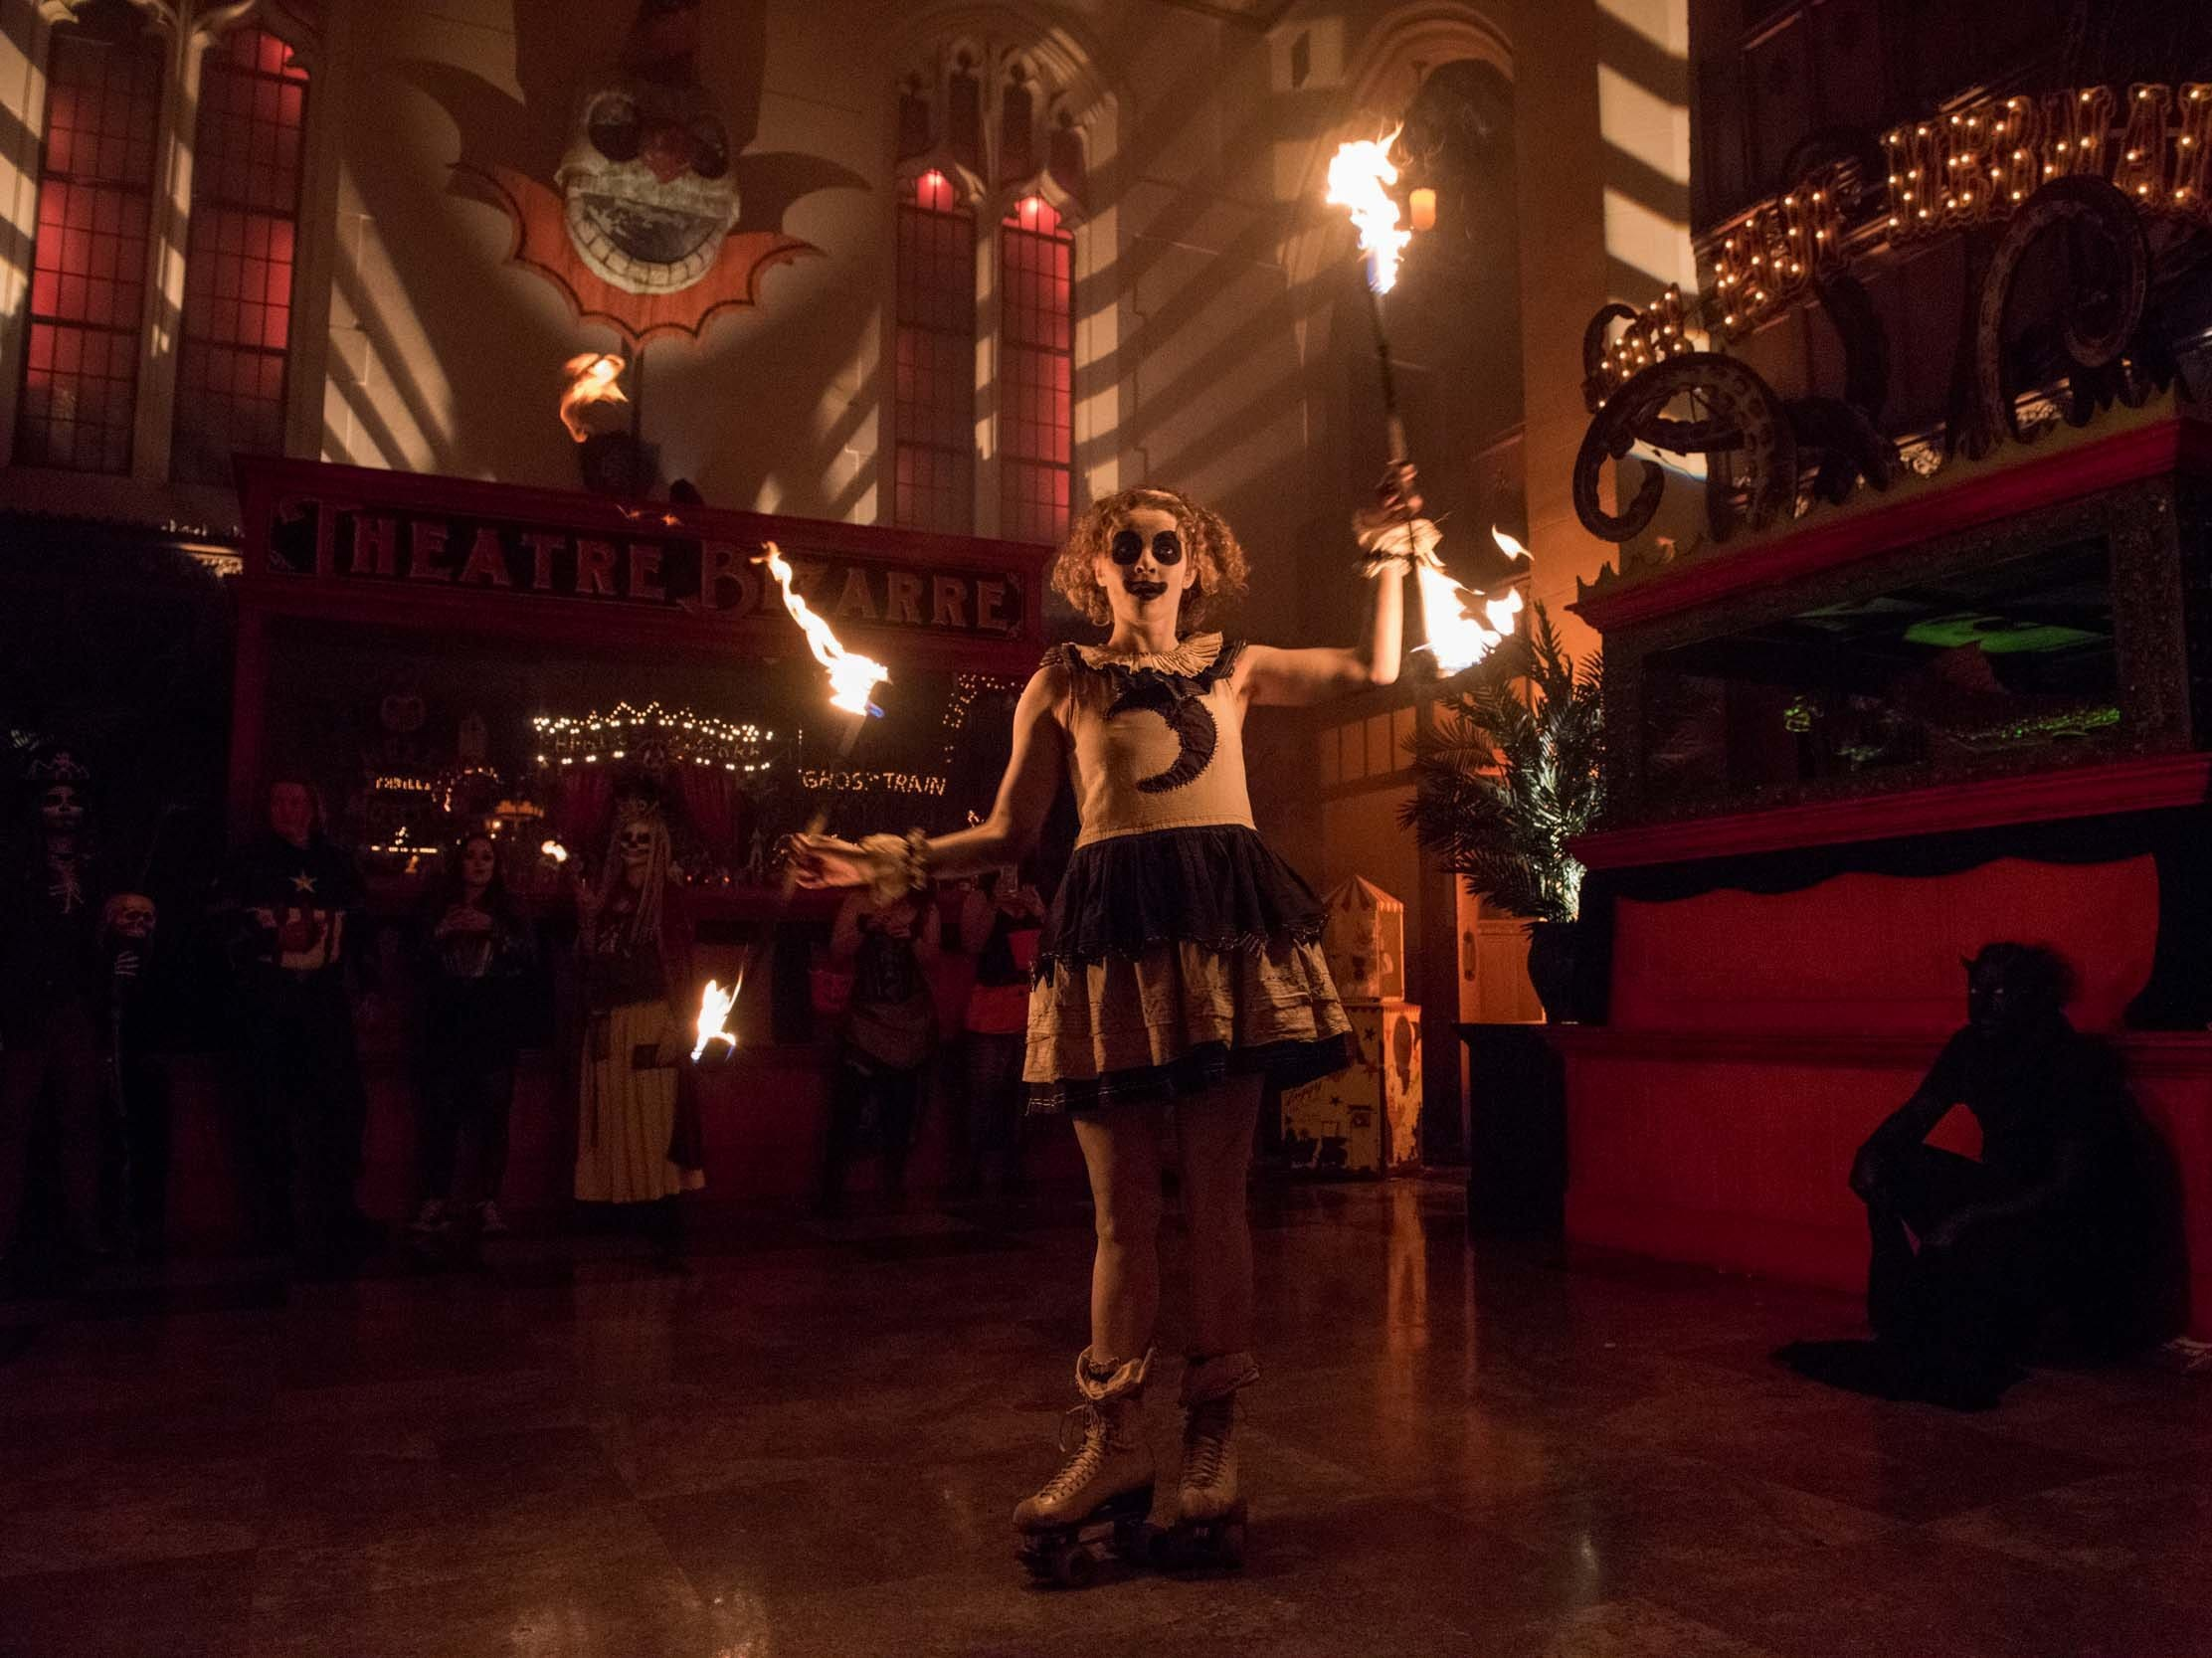 Olive Marie performs for the crowd in the main lobby during Theatre Bizarre at the Masonic Temple on October 13, 2018.